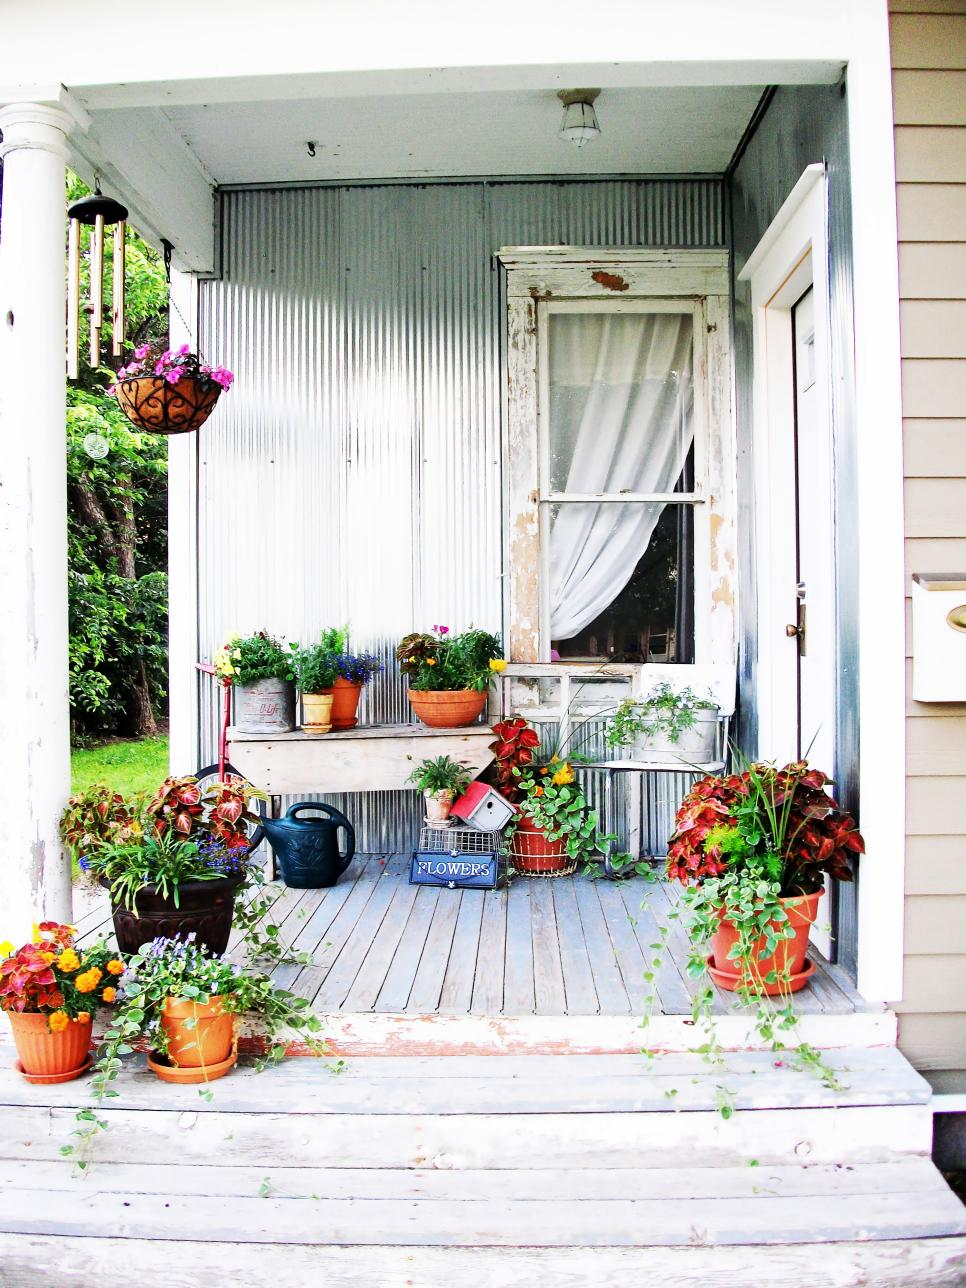 Shabby chic decorating ideas for porches and gardens hgtv Ideas to decorate your house